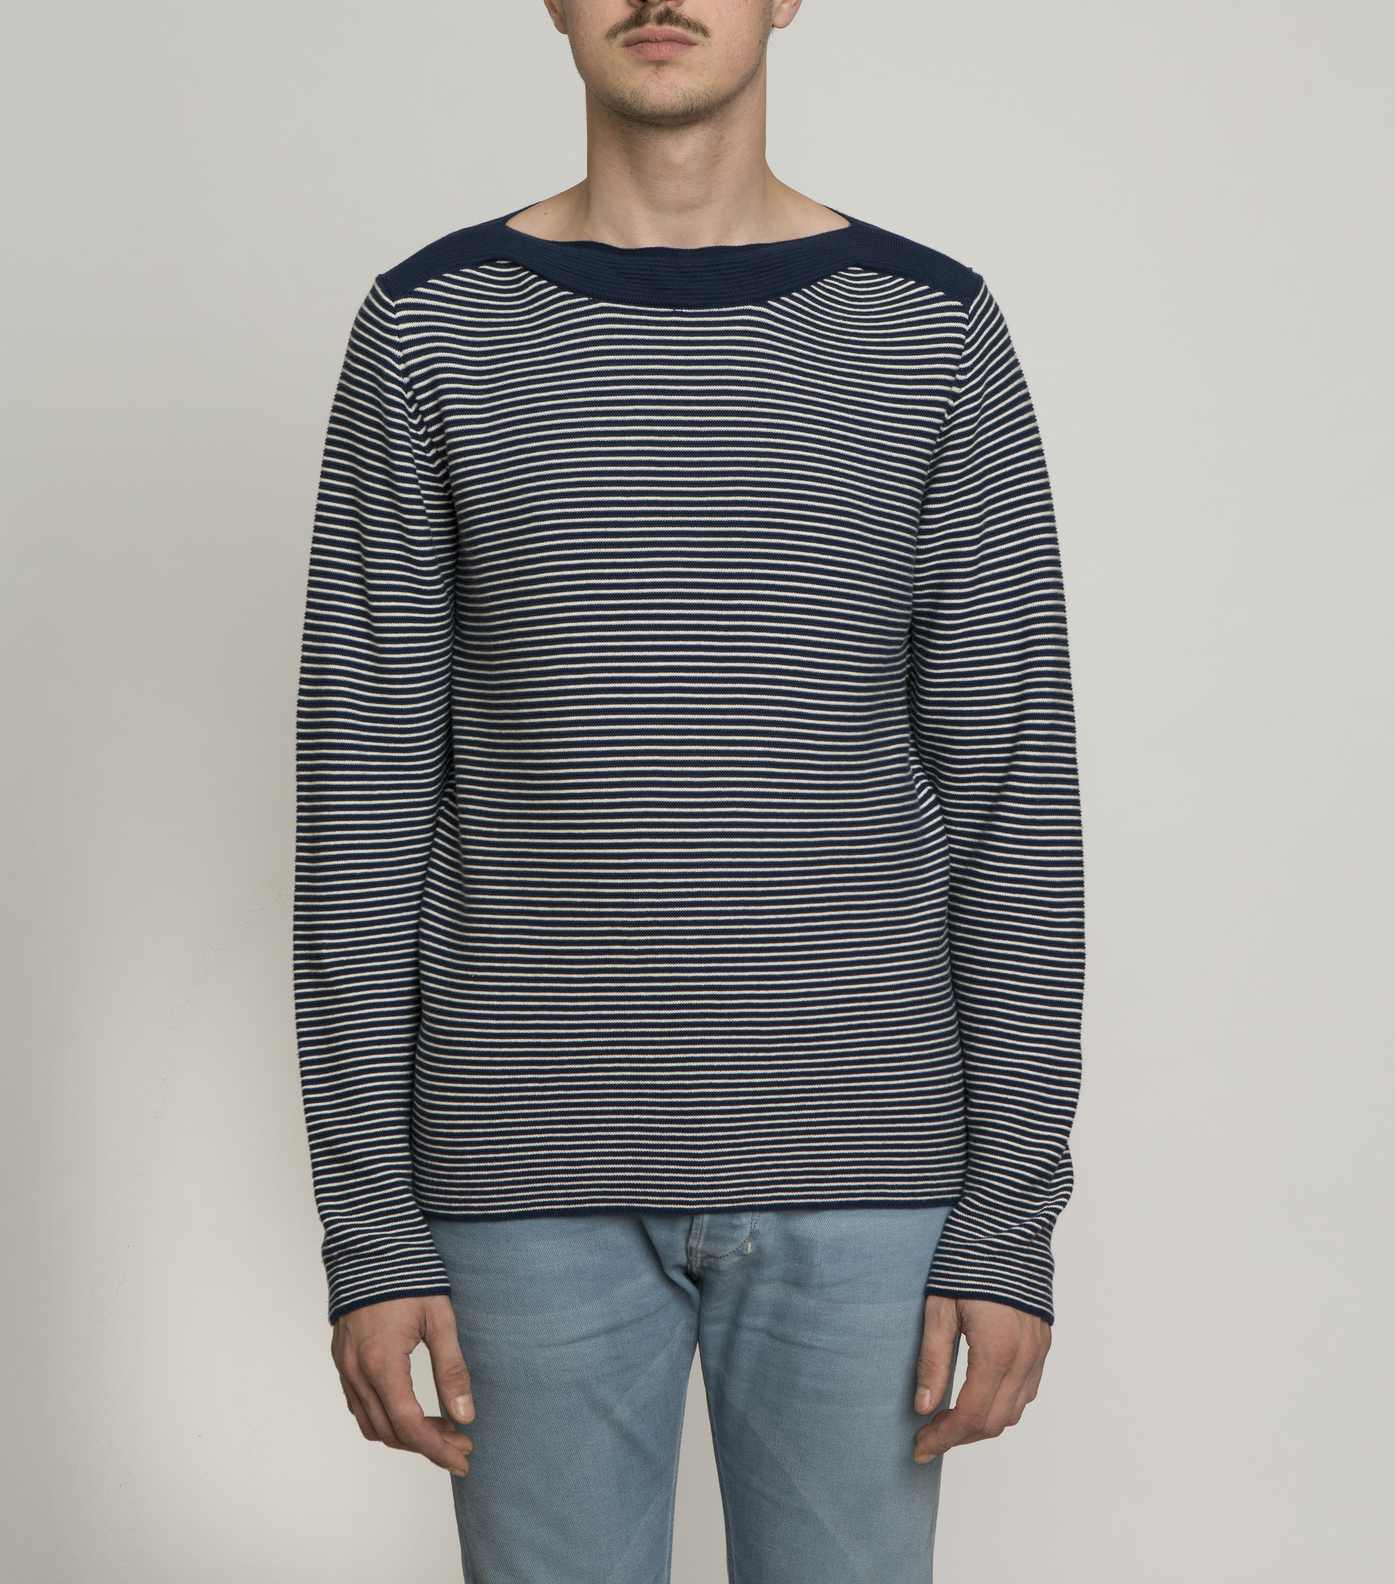 PULL ARSENAL  - Navy striped